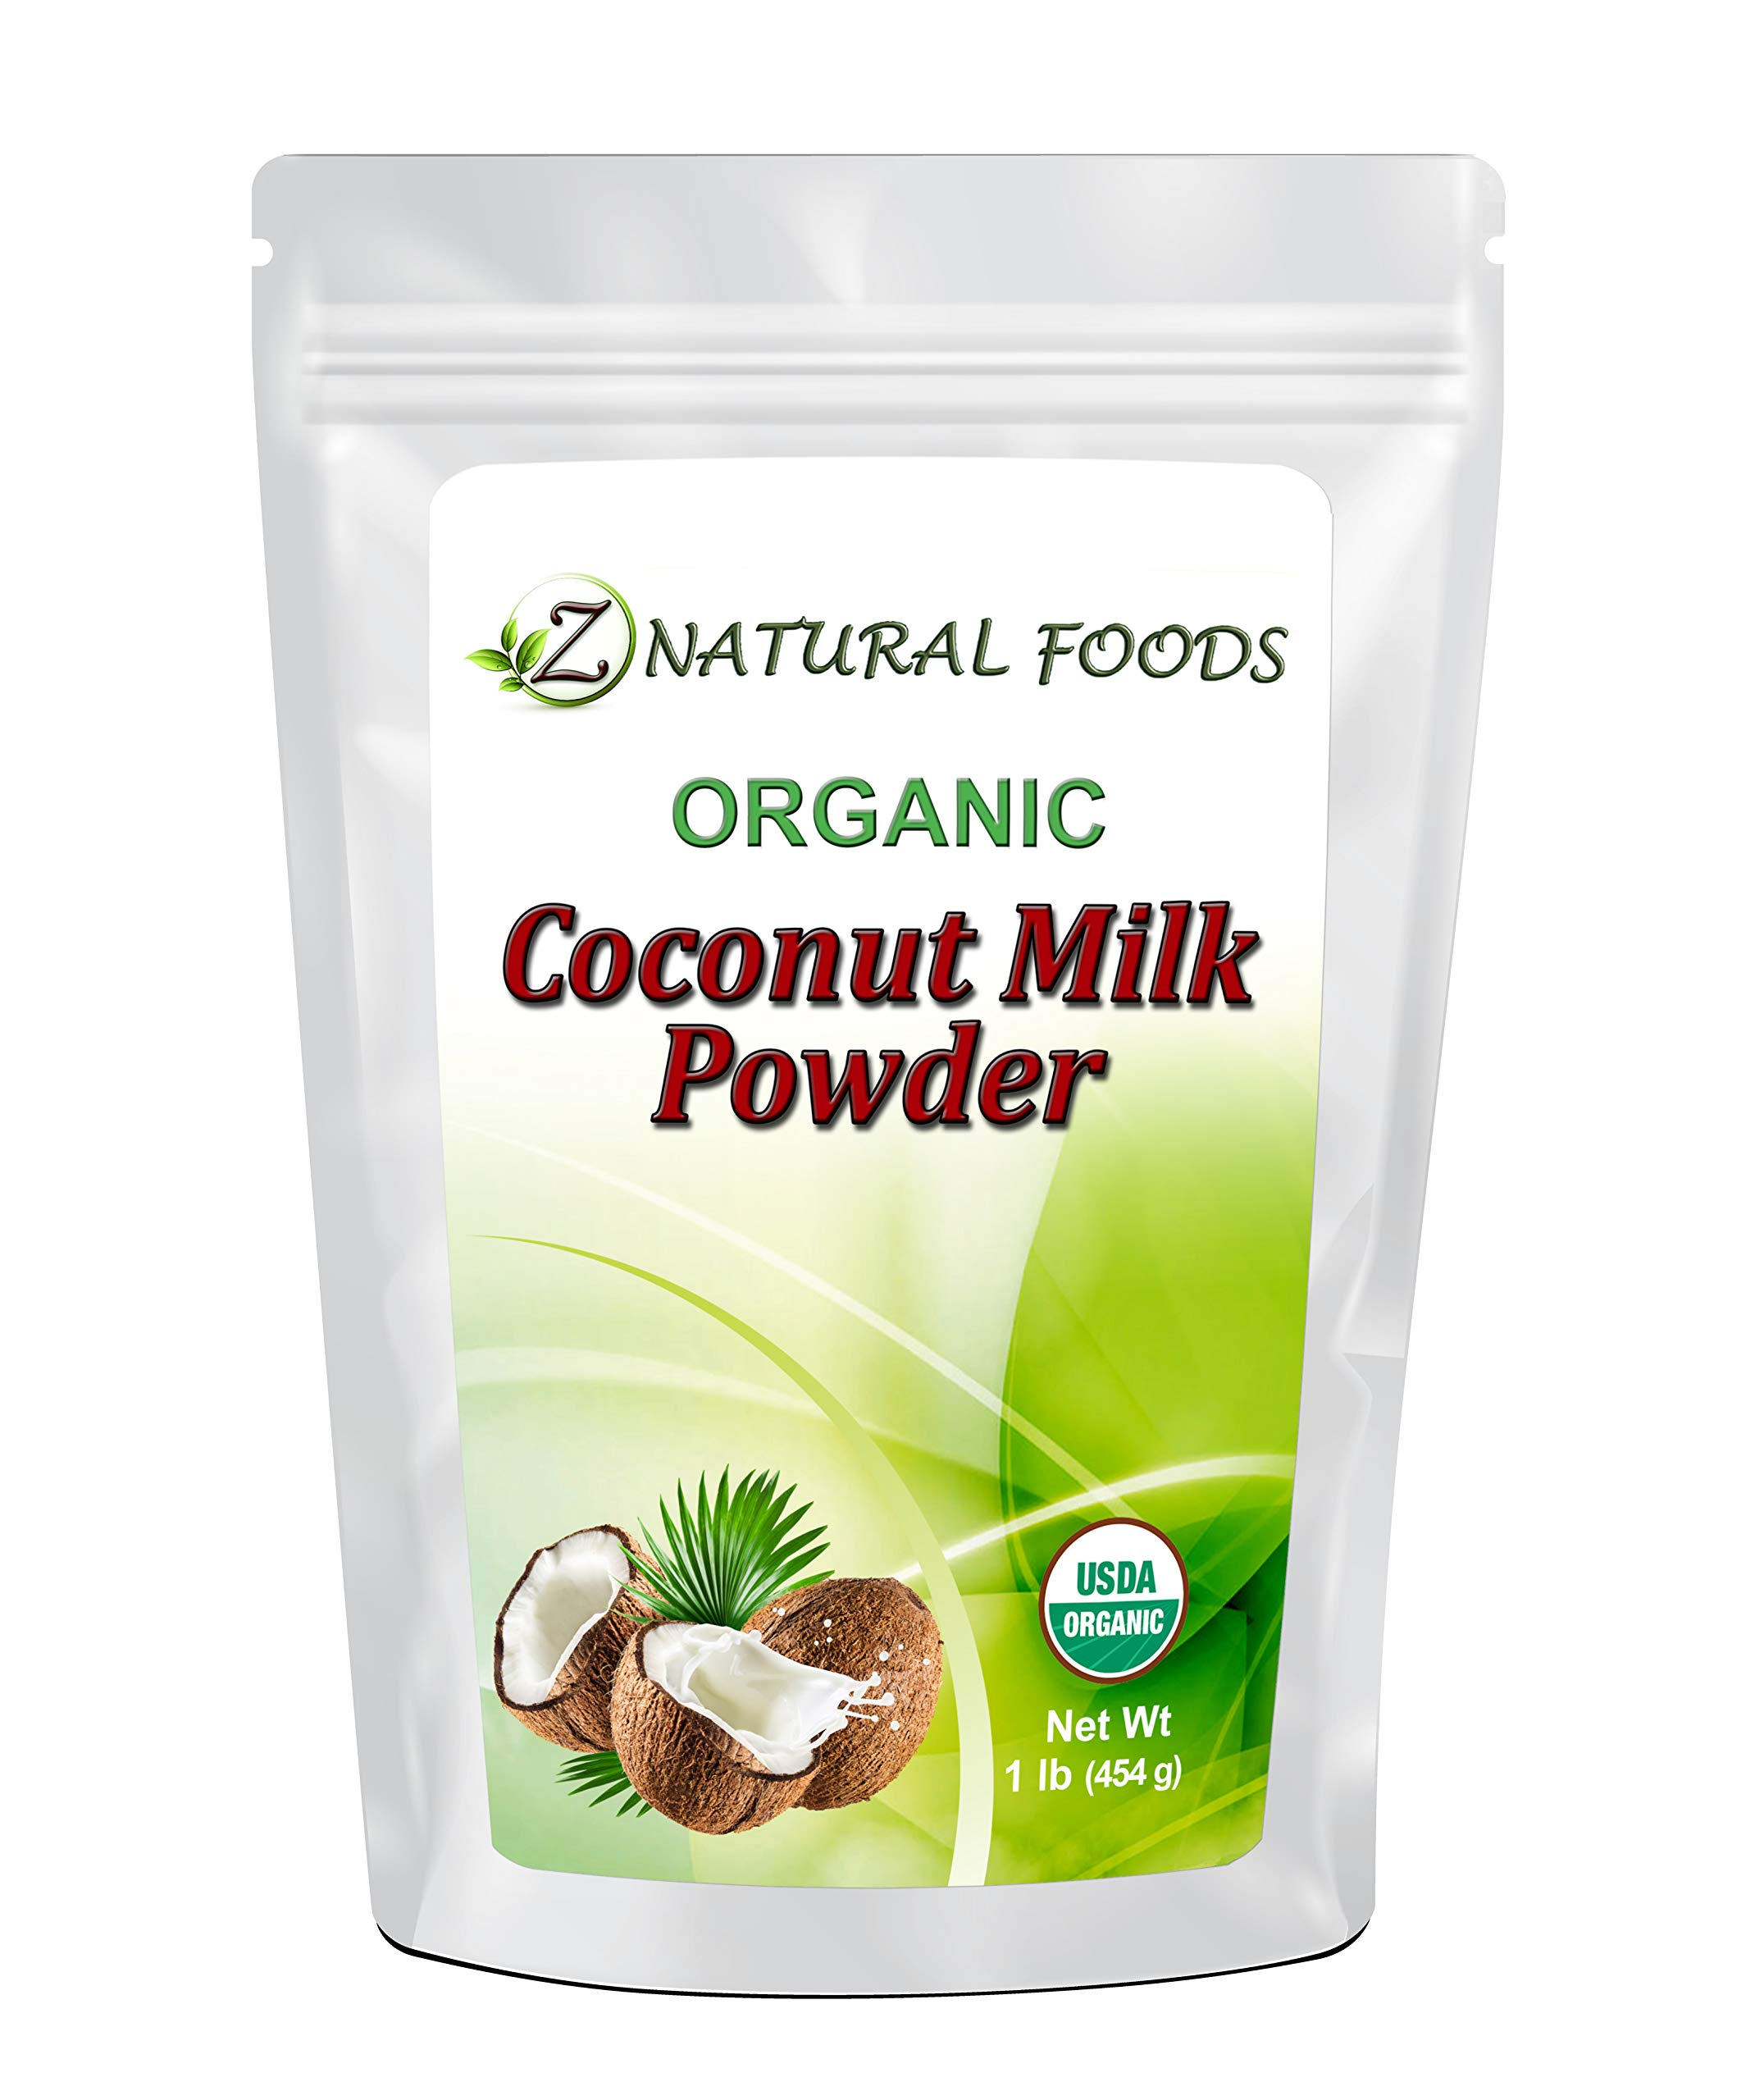 Z Natural Foods - Organic Coconut Milk Powder - Kosher, Vegan, Fresh, Gluten Free, All-Natural, Dairy Free, Non-GMO, Keto, Paleo Diet Friendly (1 lb) by Z Natural Foods